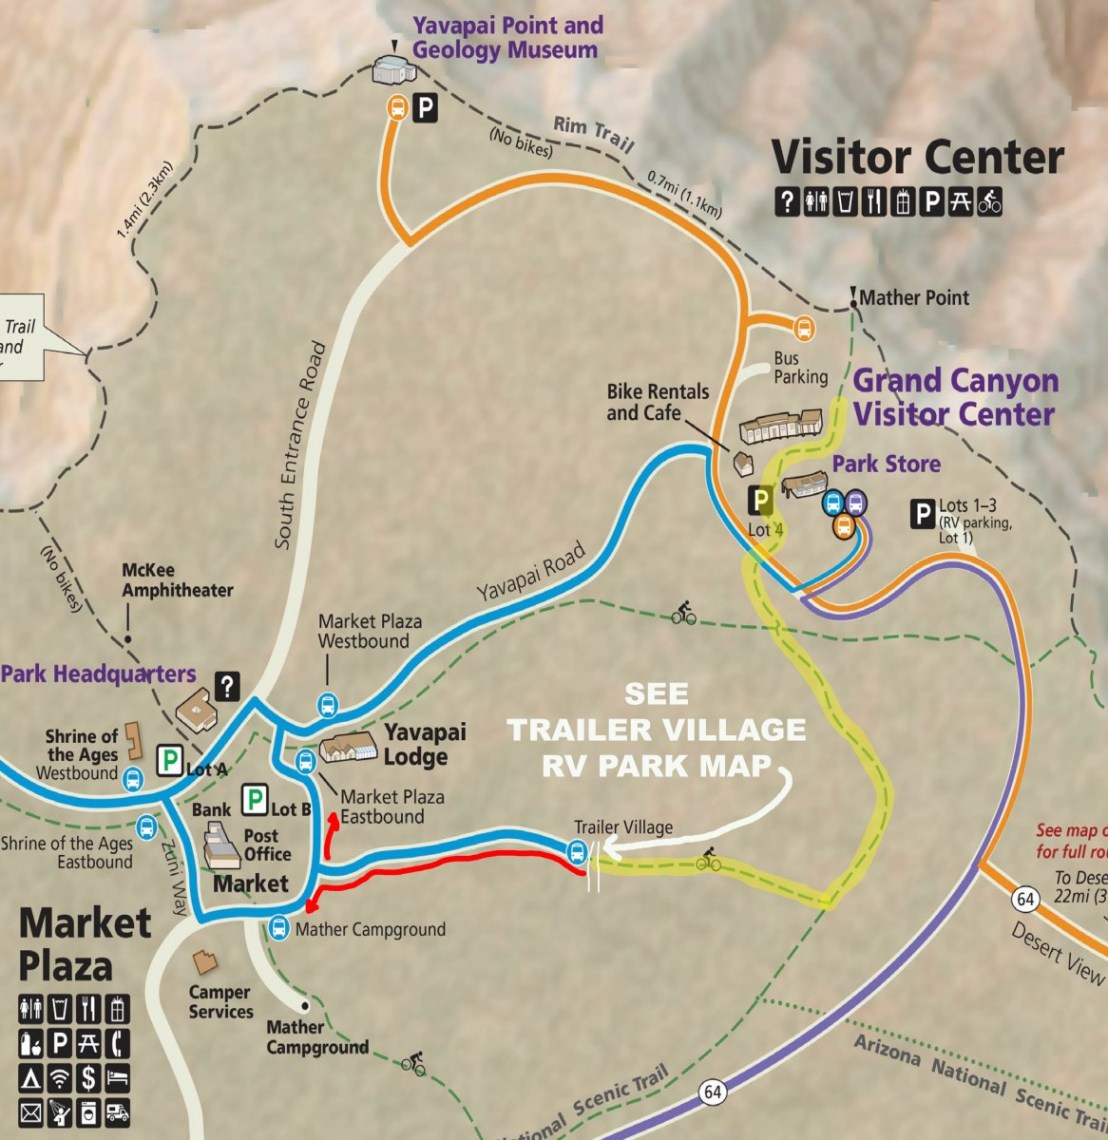 National Park Service Map of Trailer Village RV Park Area